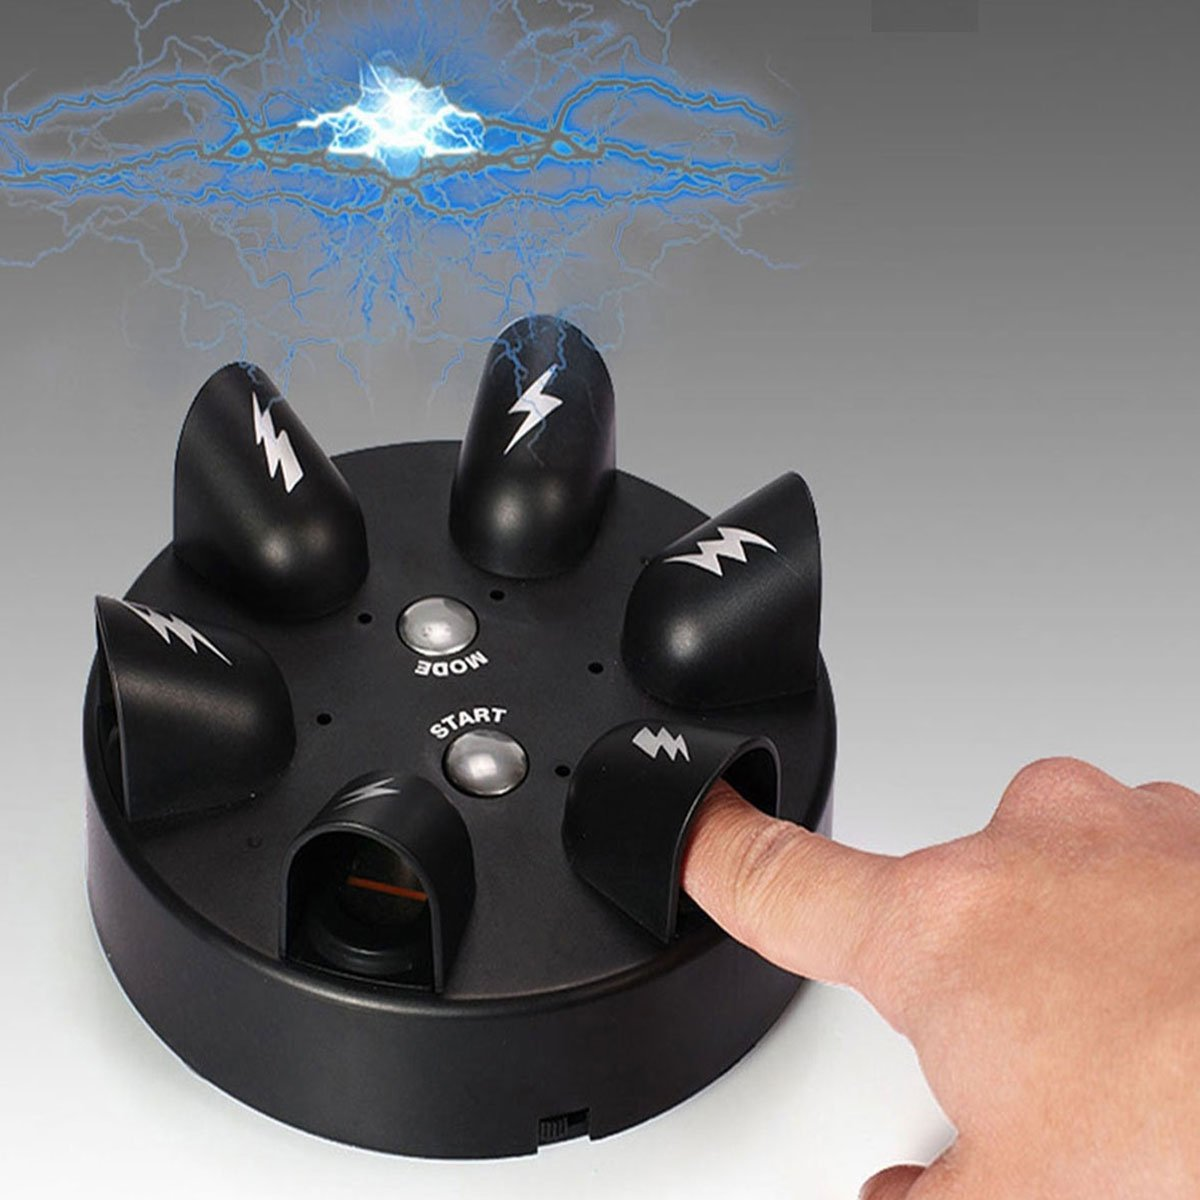 Heartbeat Finger Roulette Electric Lie Detector Made of High-Quality Plastic